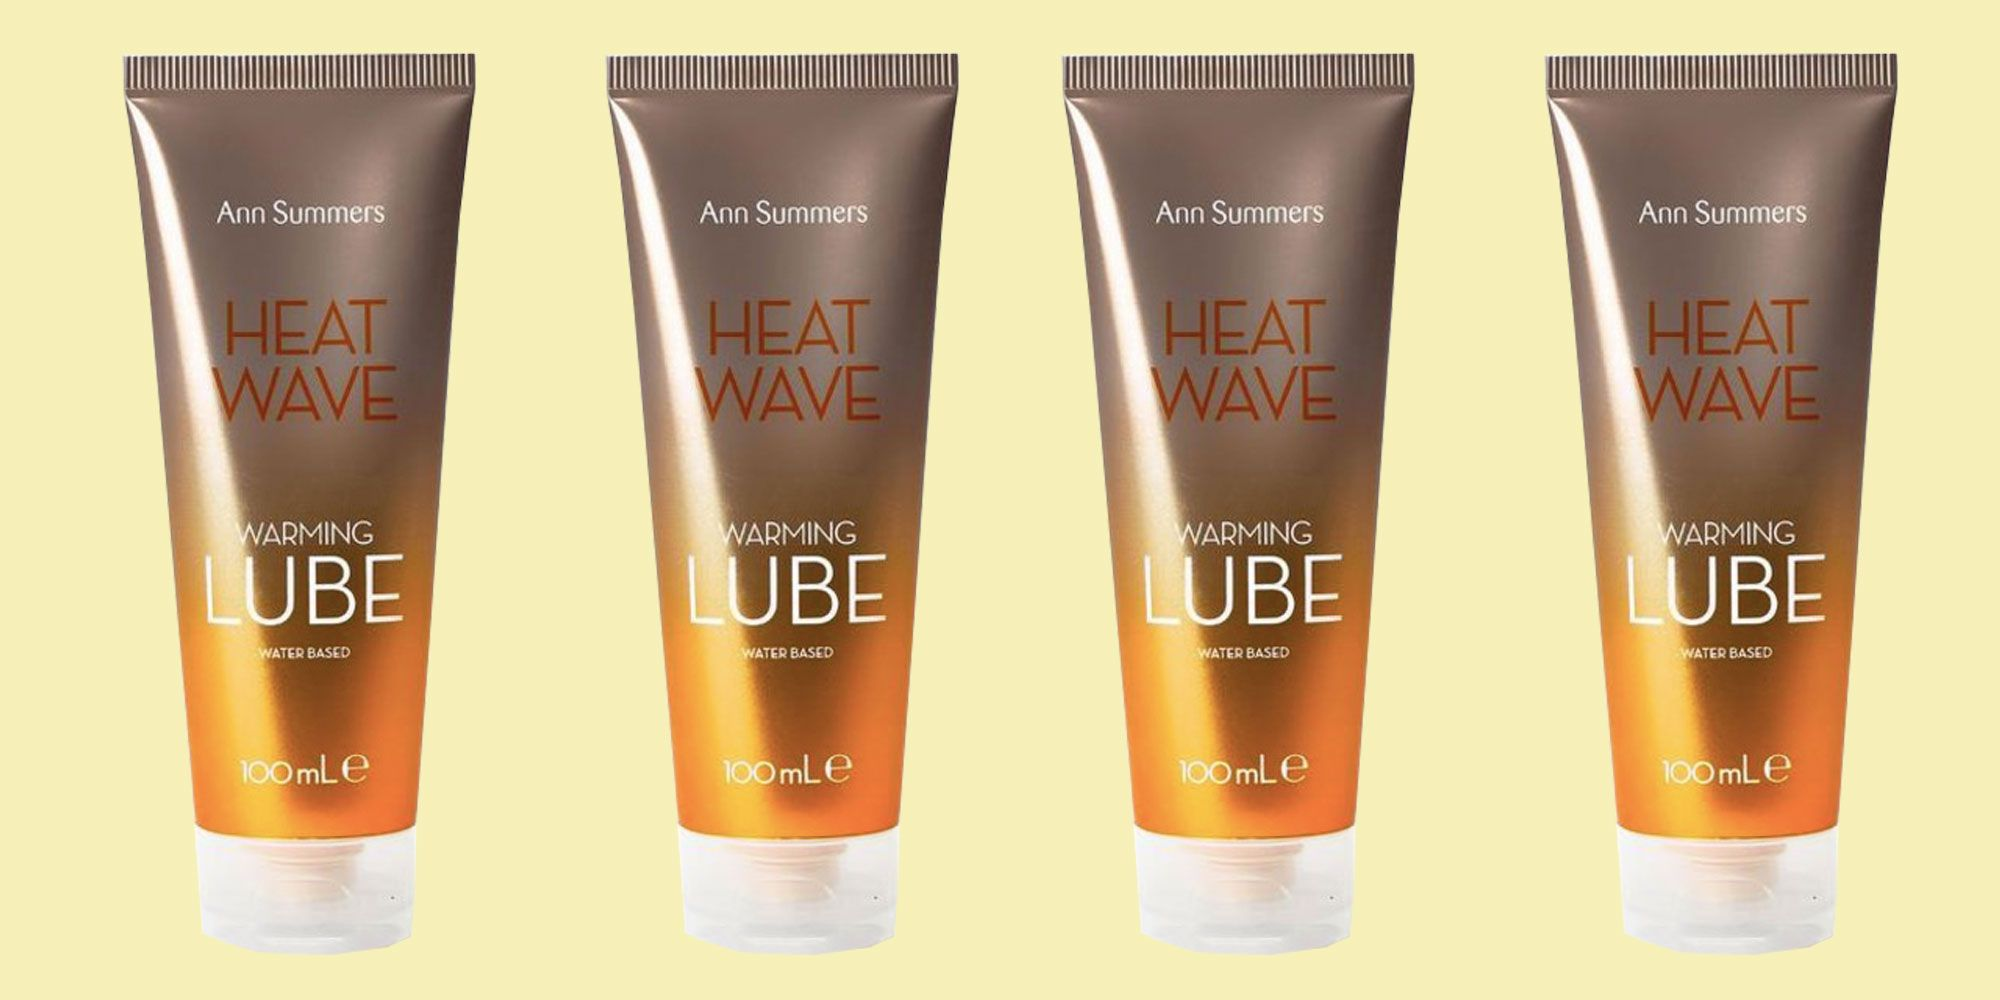 warming lube, lube, ann summers lube,